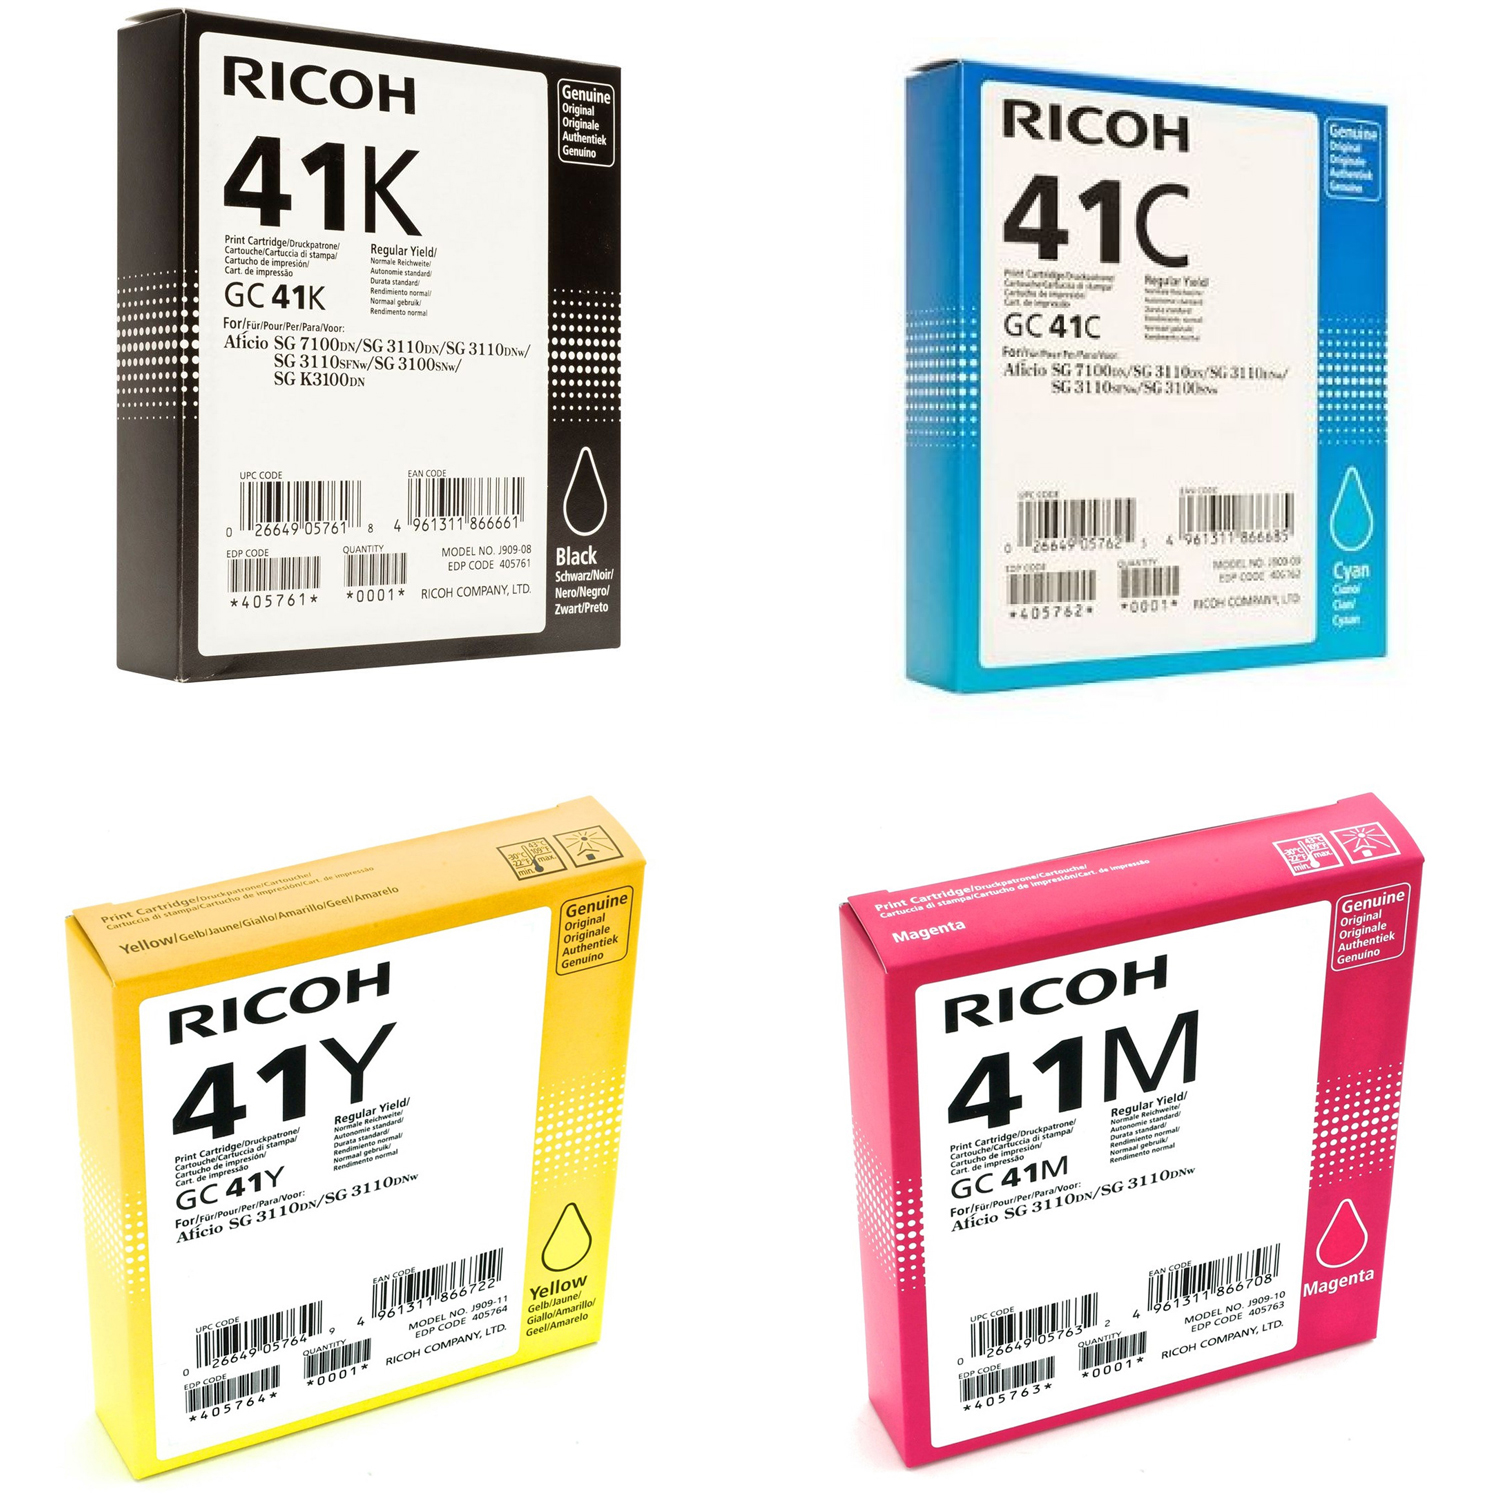 Original Ricoh GC41 CMYK Multipack High Capacity Gel Ink Cartridges (405761 / 405762 / 405763 / 405764)